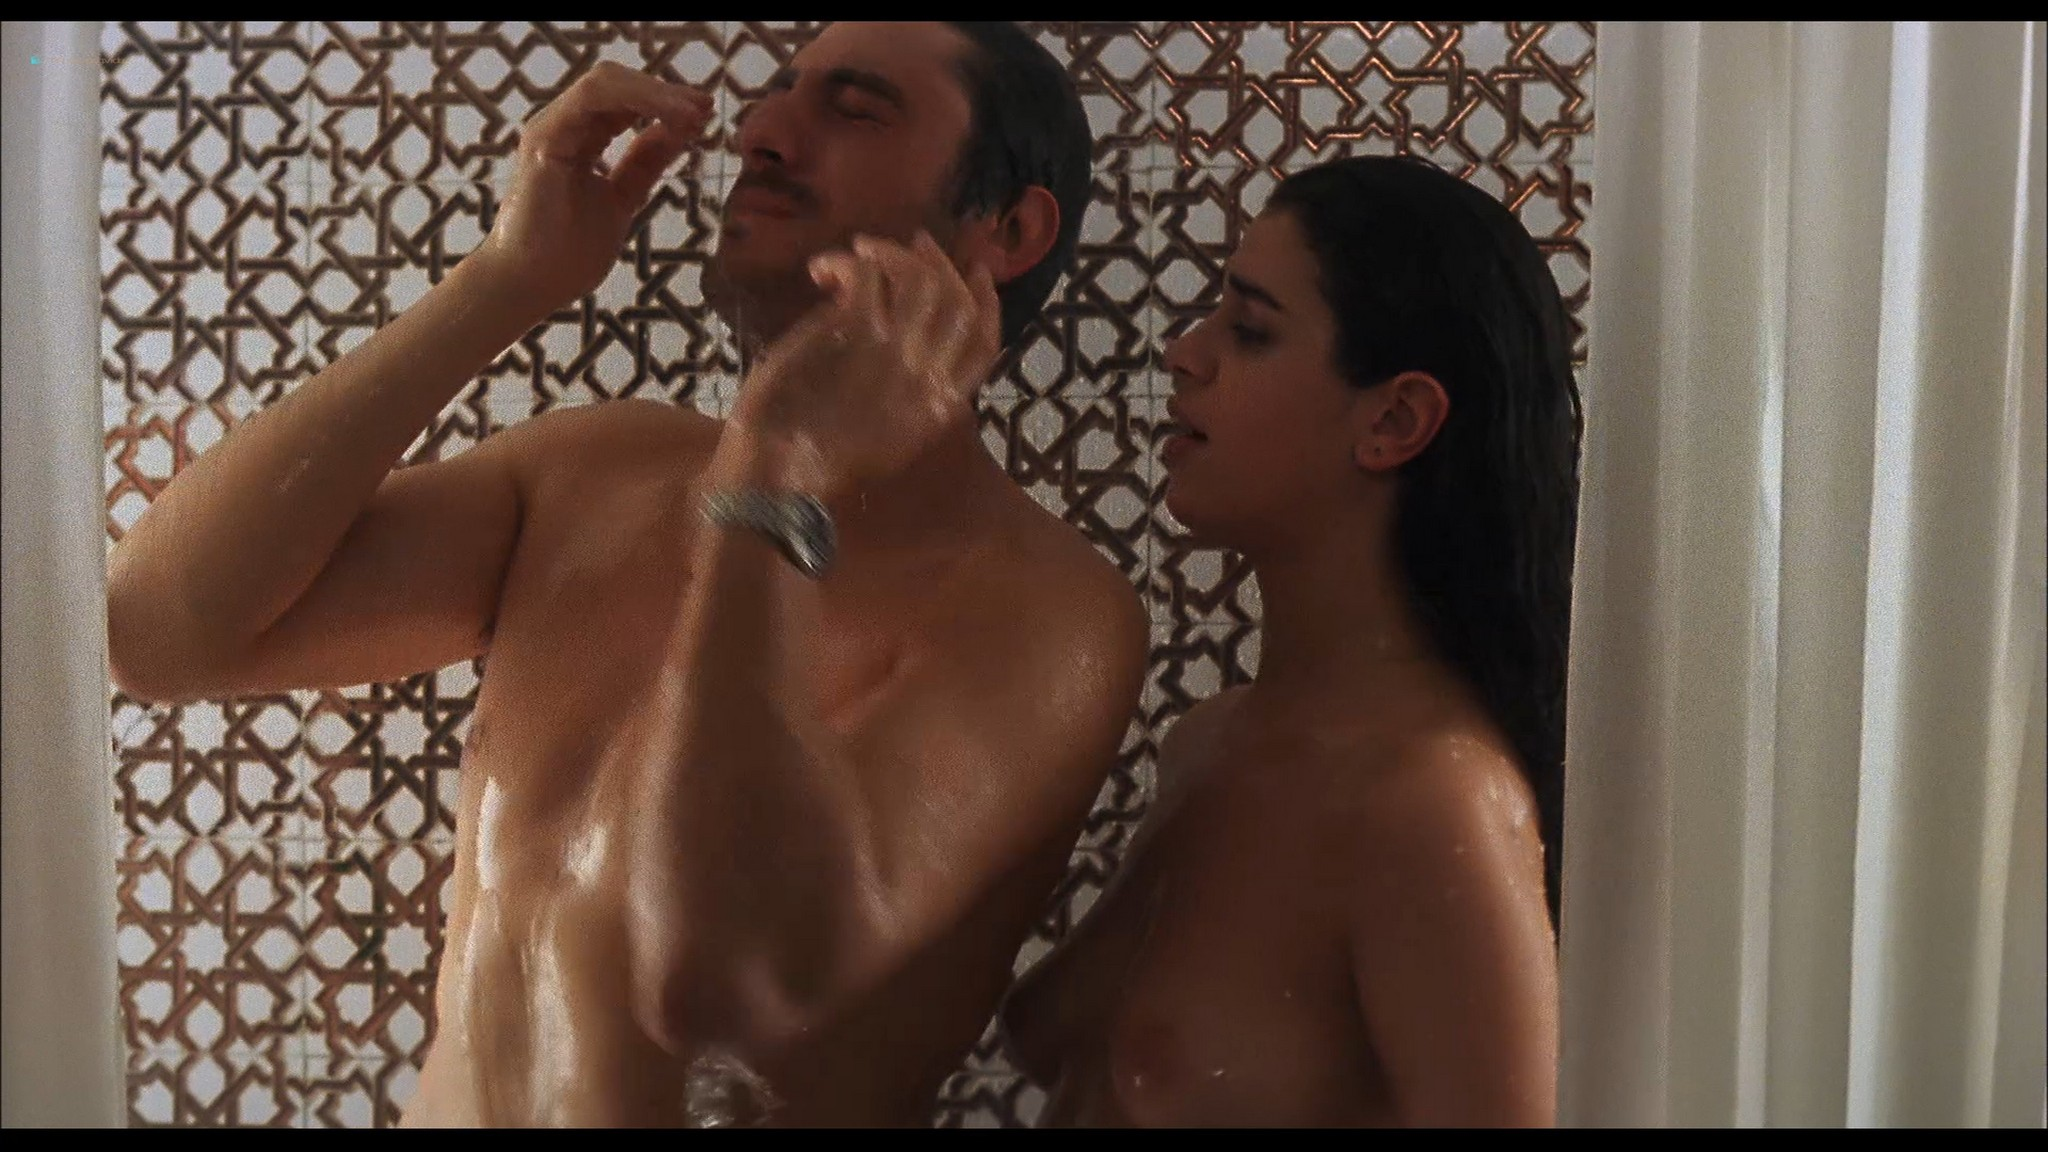 Ruth Gabriel nude full frontal Candela Peña nude too - Días contados (ES-1994) HD 1080p BluRay (r) (6)